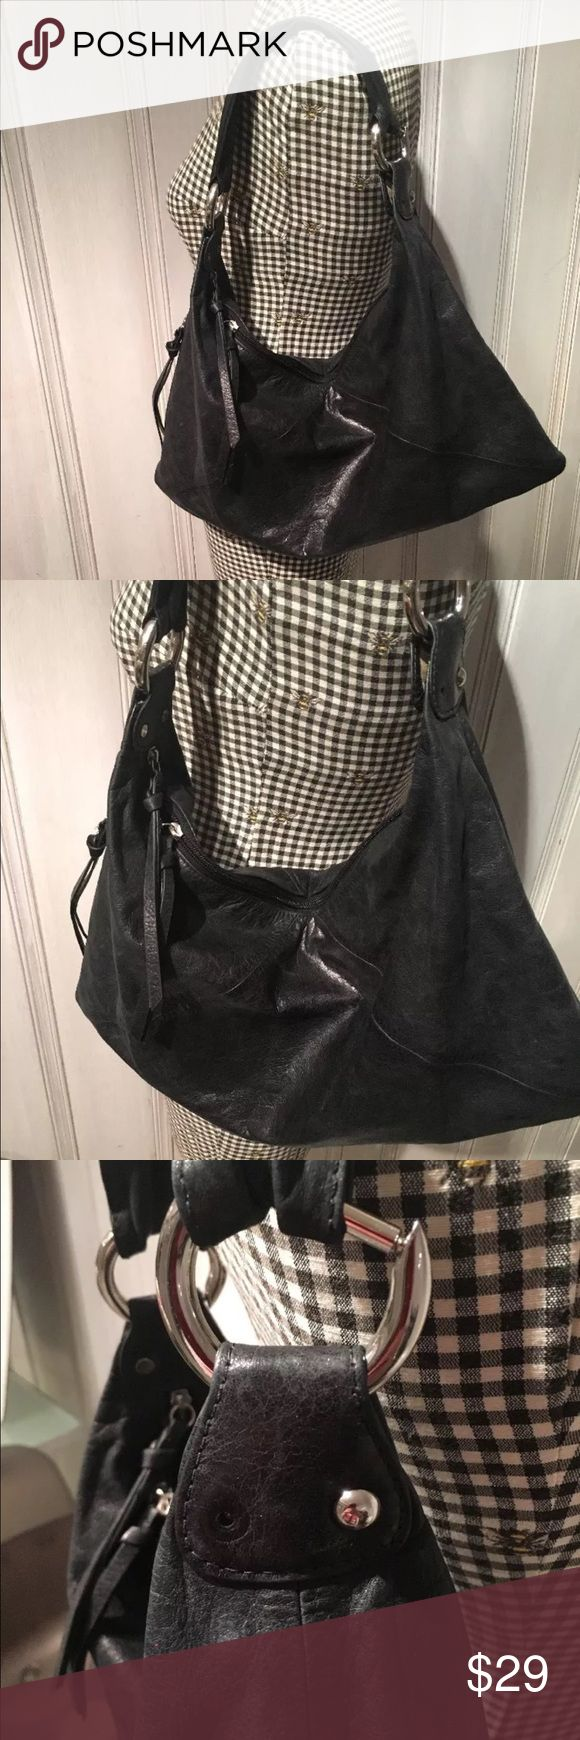 Hobo International Soft Leather Purse Bag Black Buttery soft leather! Perfect classic handbag. It is missing one of the silver beads on the one side, but really isn't noticeable. Scoop this smokin deal up! 20% off all bundles 🇺🇸 HOBO Bags Shoulder Bags